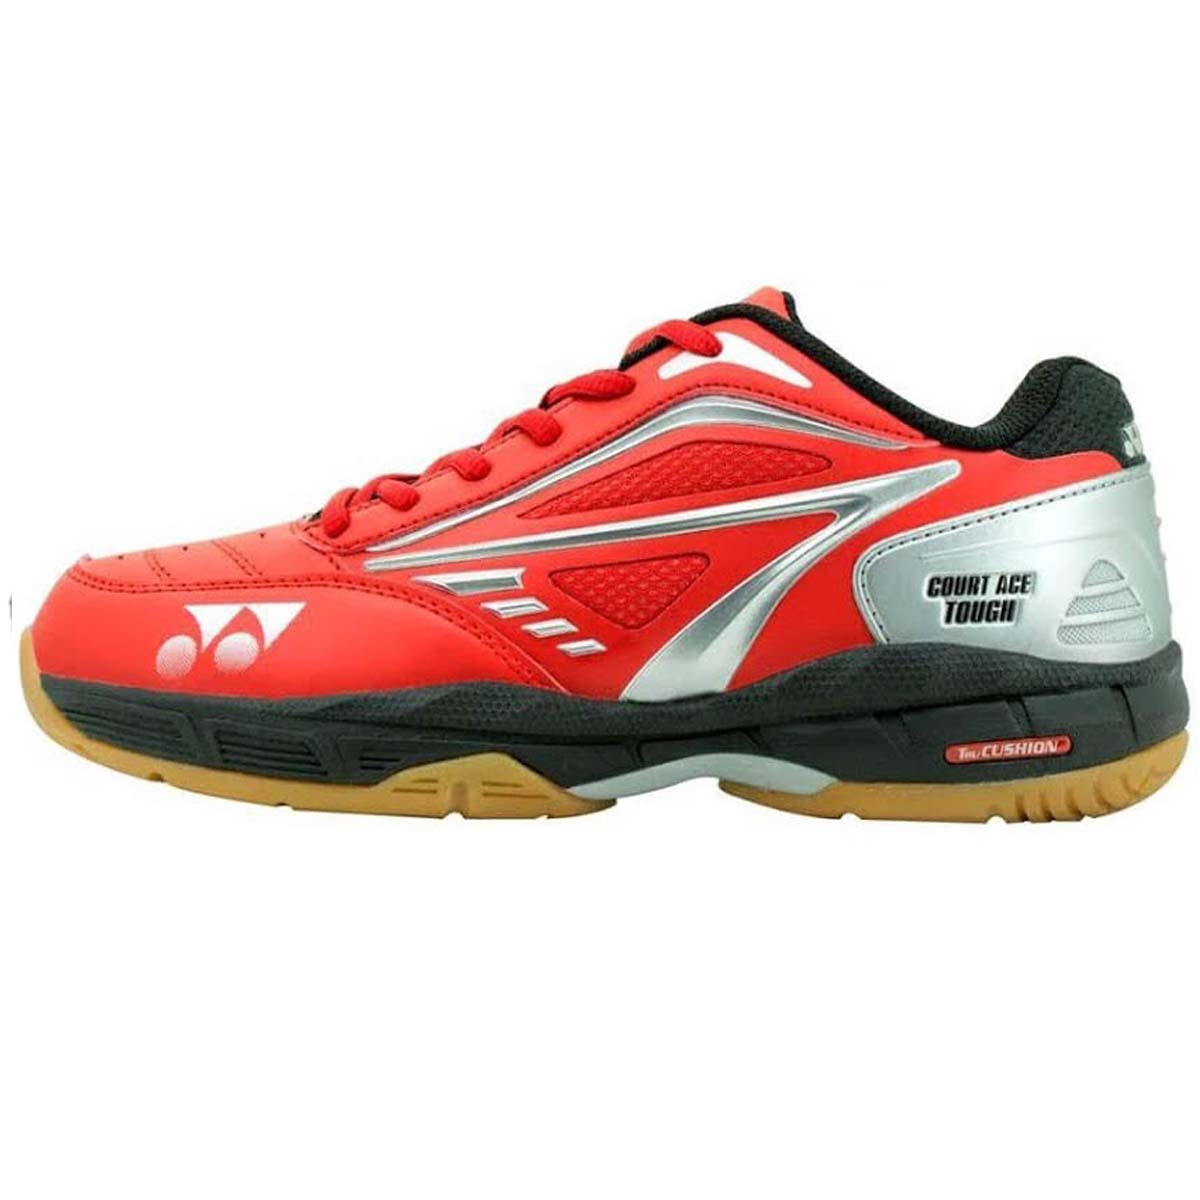 Buy Yonex Court Ace Tough Badminton Shoes Red Black